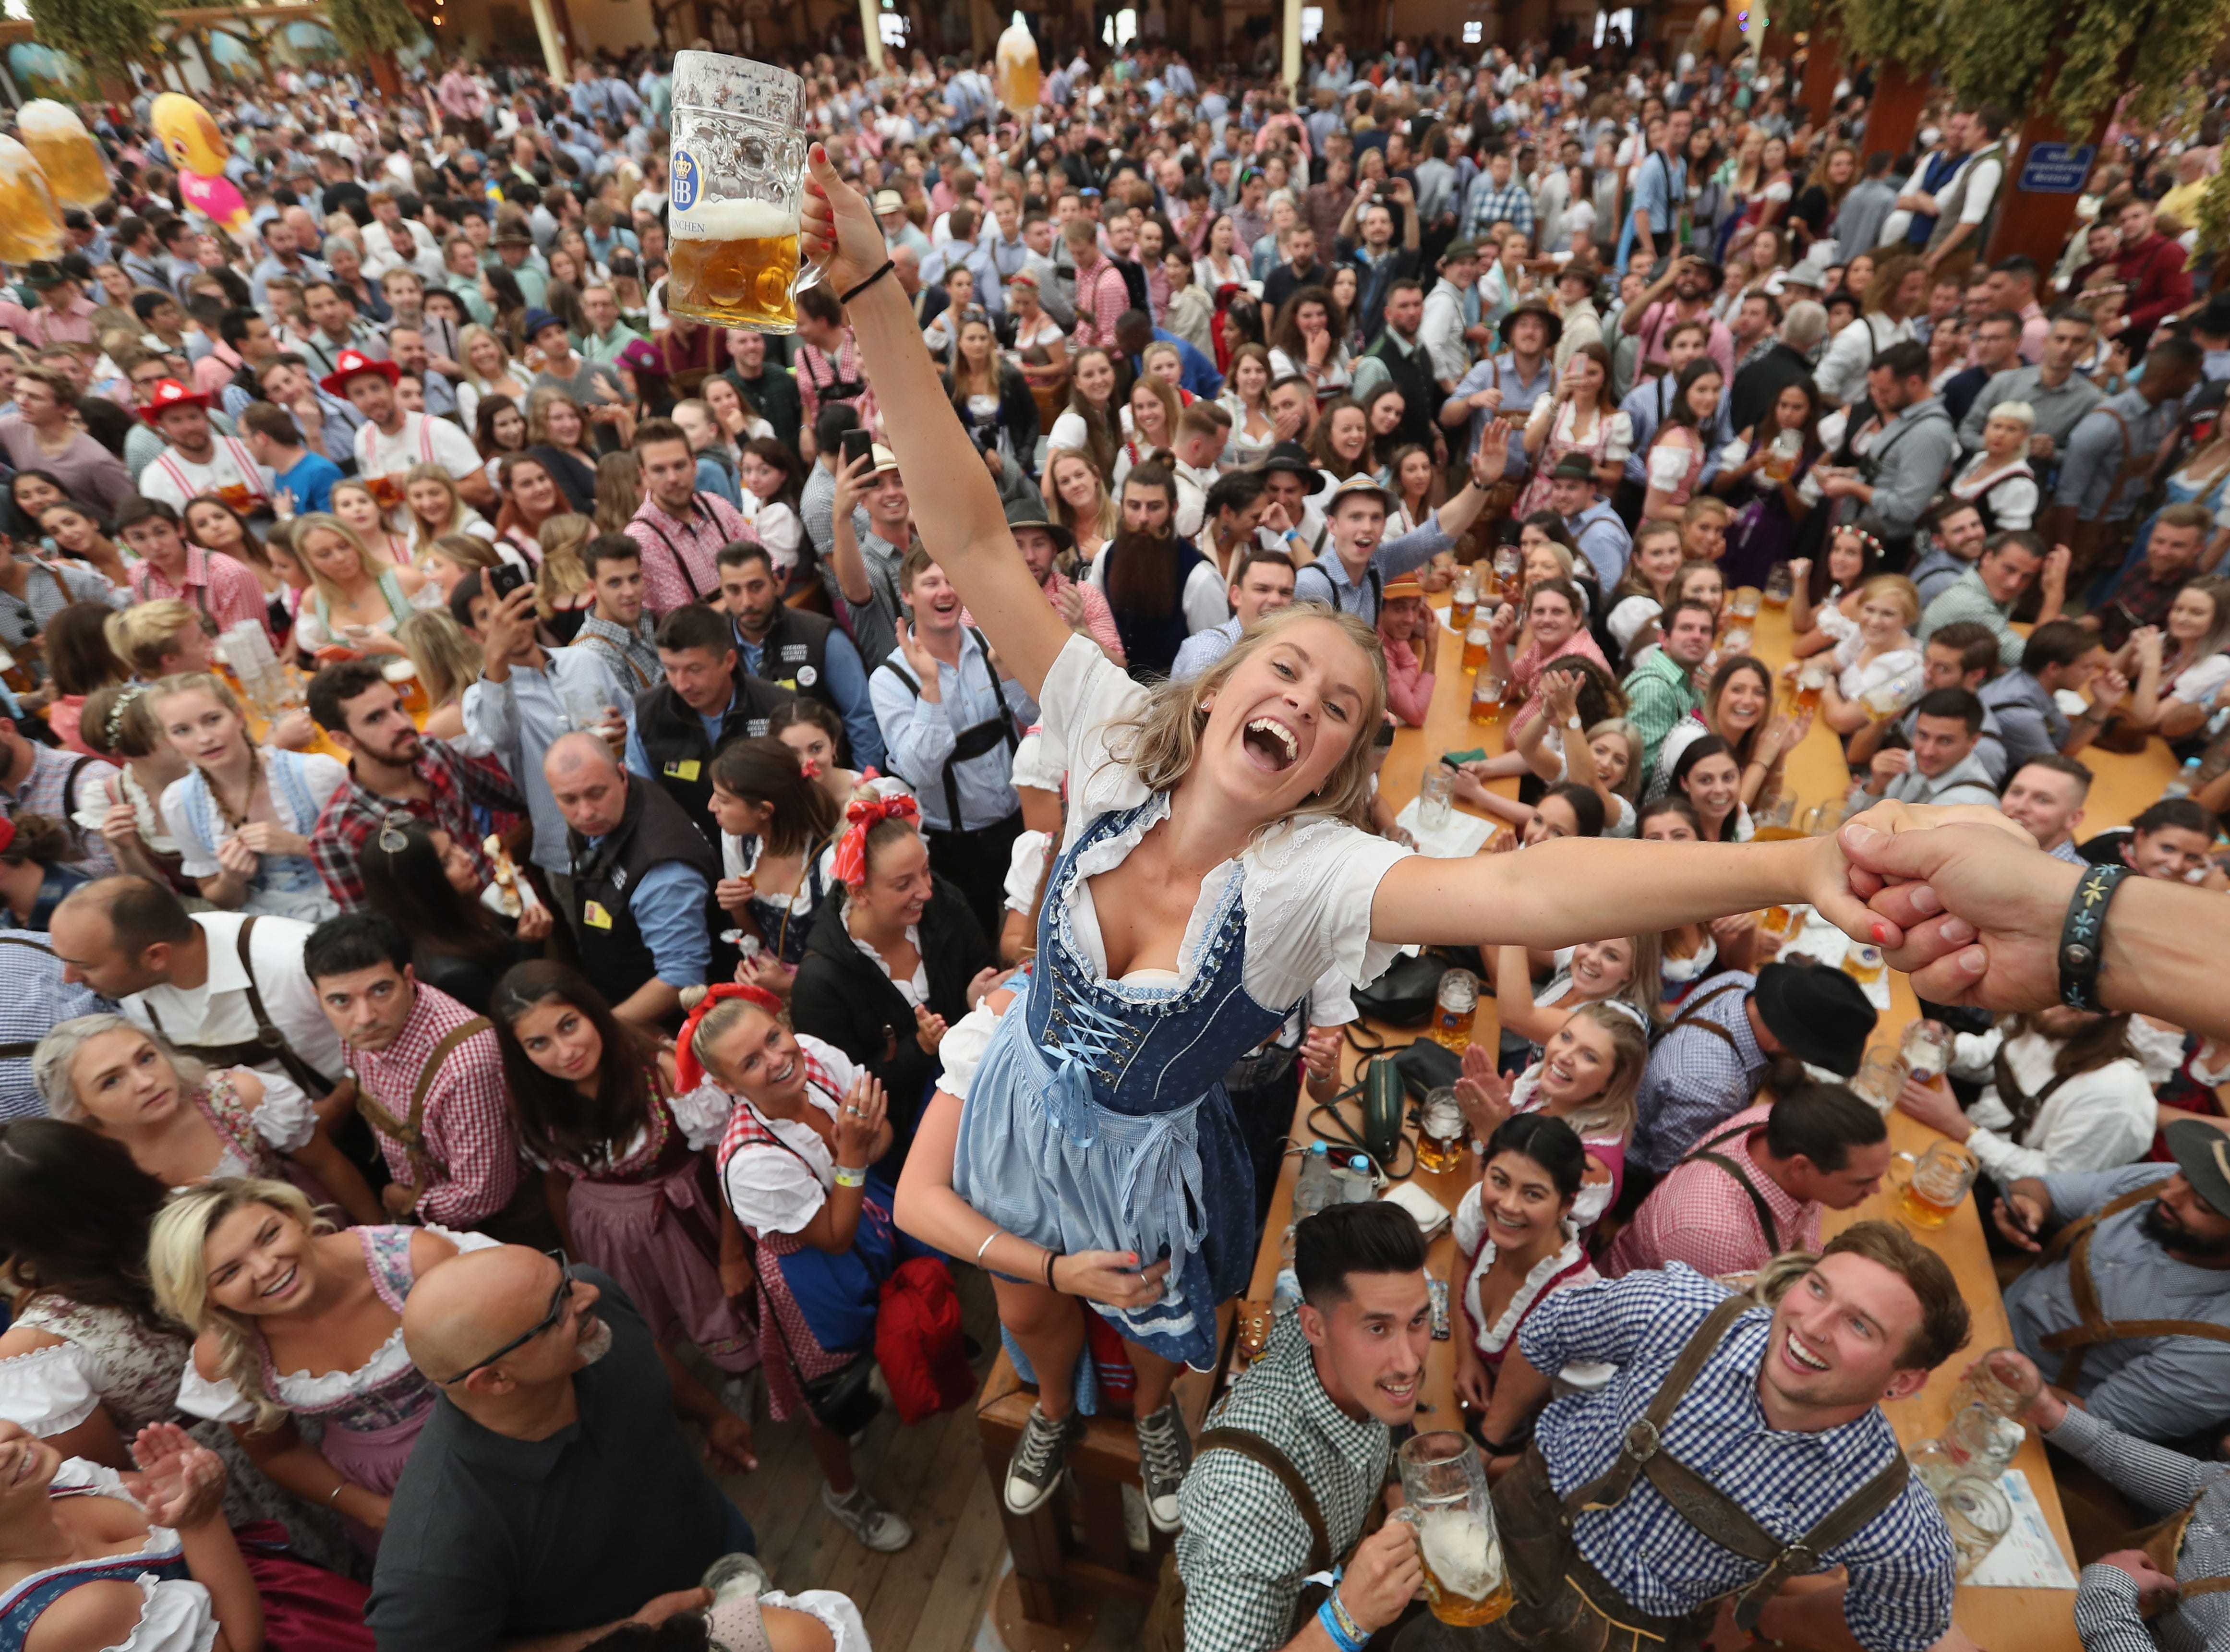 Visitors celebrate in a beer tent on opening day.